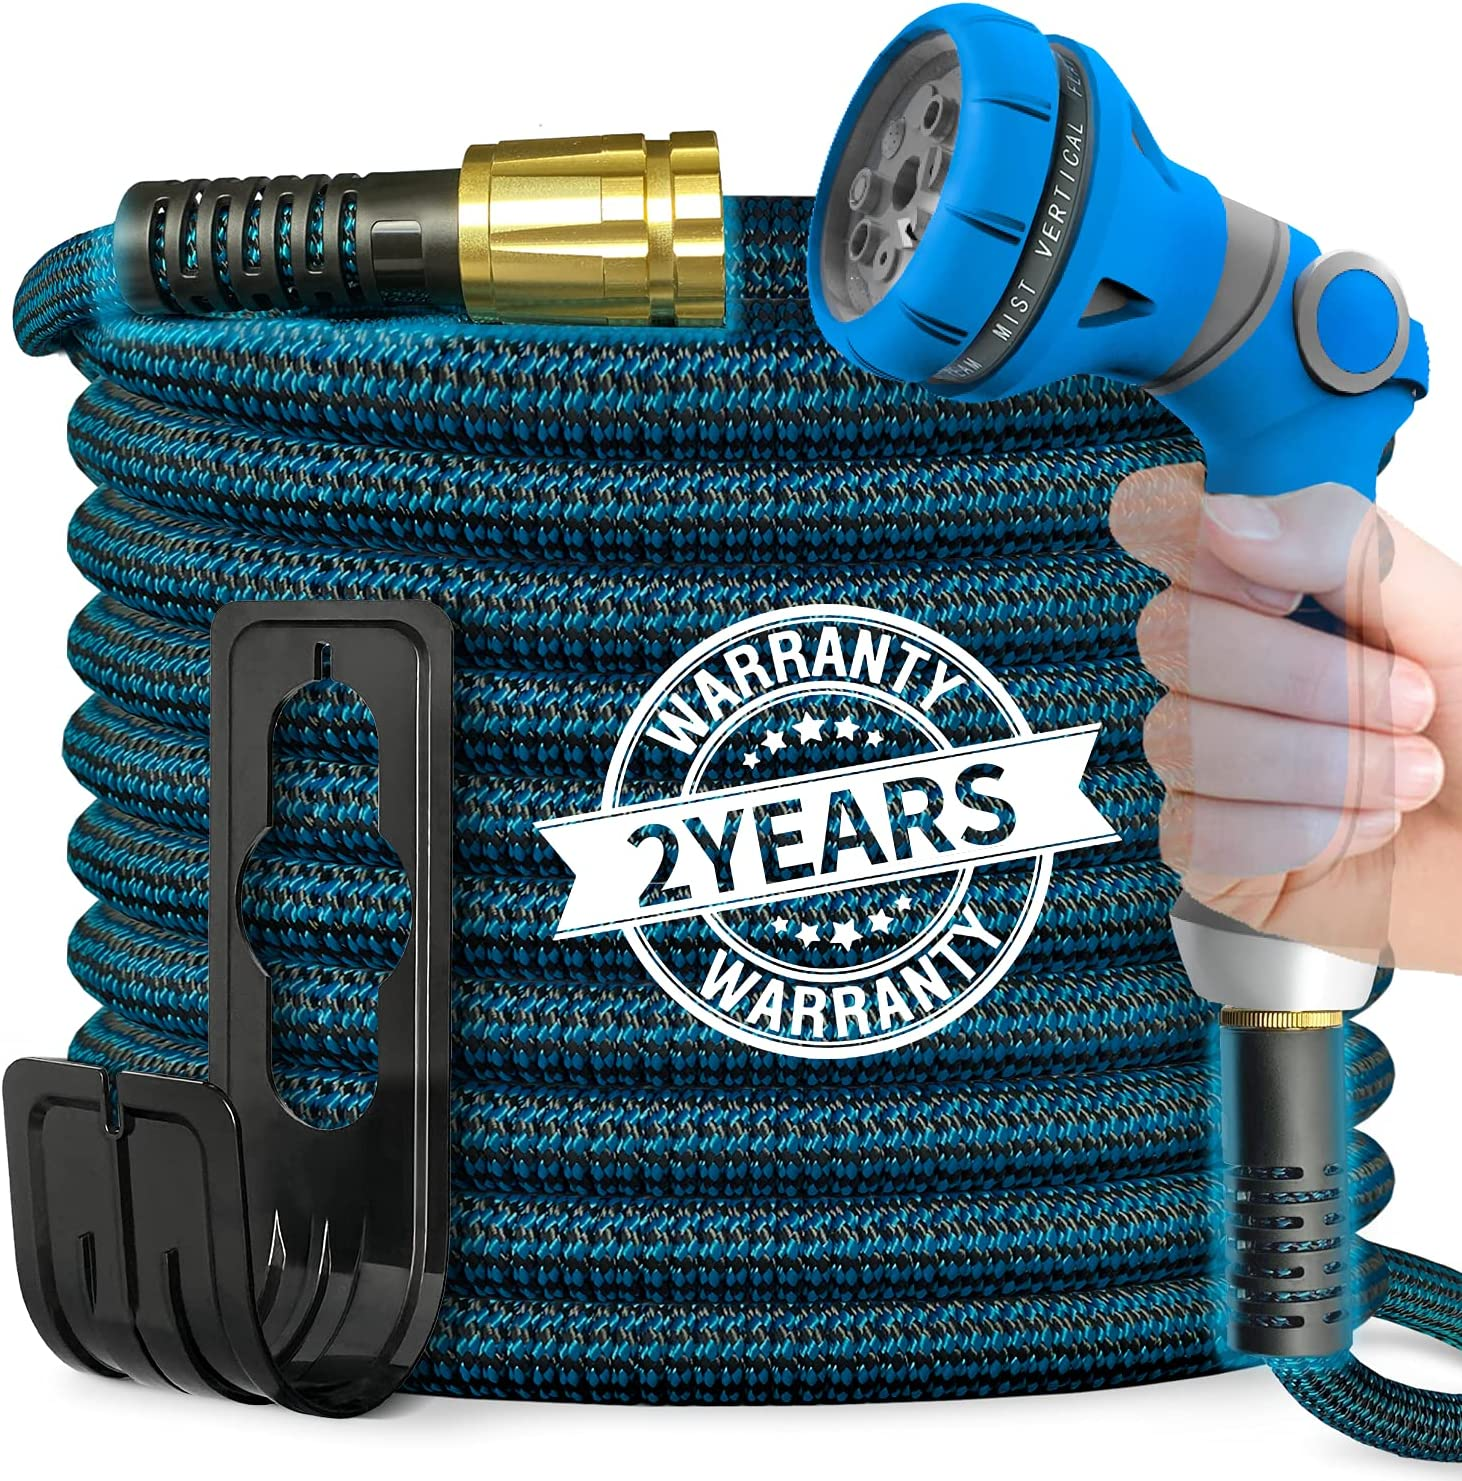 Vutzura Expandable Garden Hose 50 ft 8 Function Nozzle Water Hose 3-Layer Latex, No-Leak Kink Free Flexible Hose Brass Fittings, Durable Lightweight Collapsible Hose, Watering, Car Washing Water Pipe